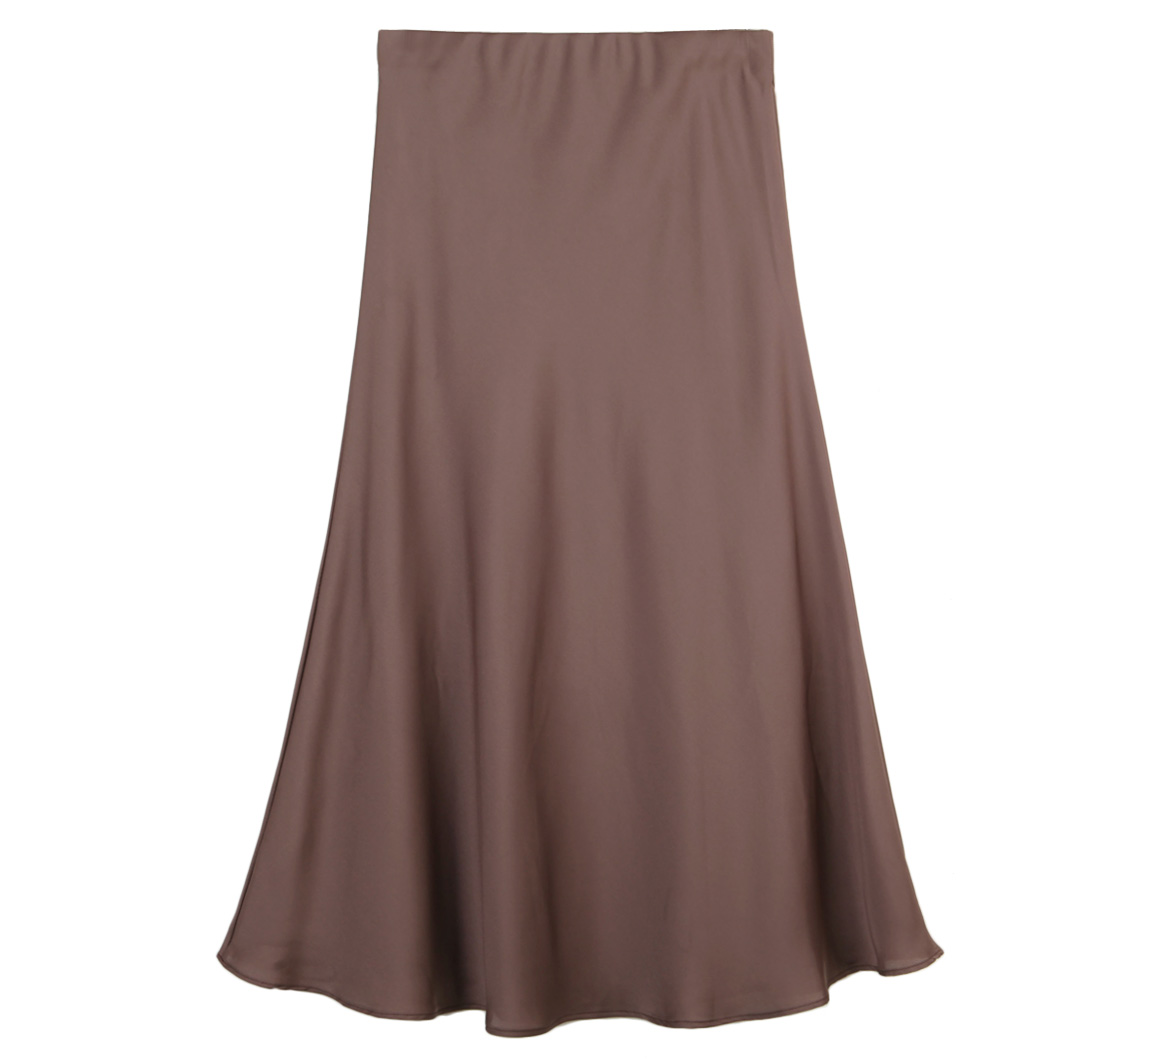 Very comfortable to wear :) Bending Shatin Skirt